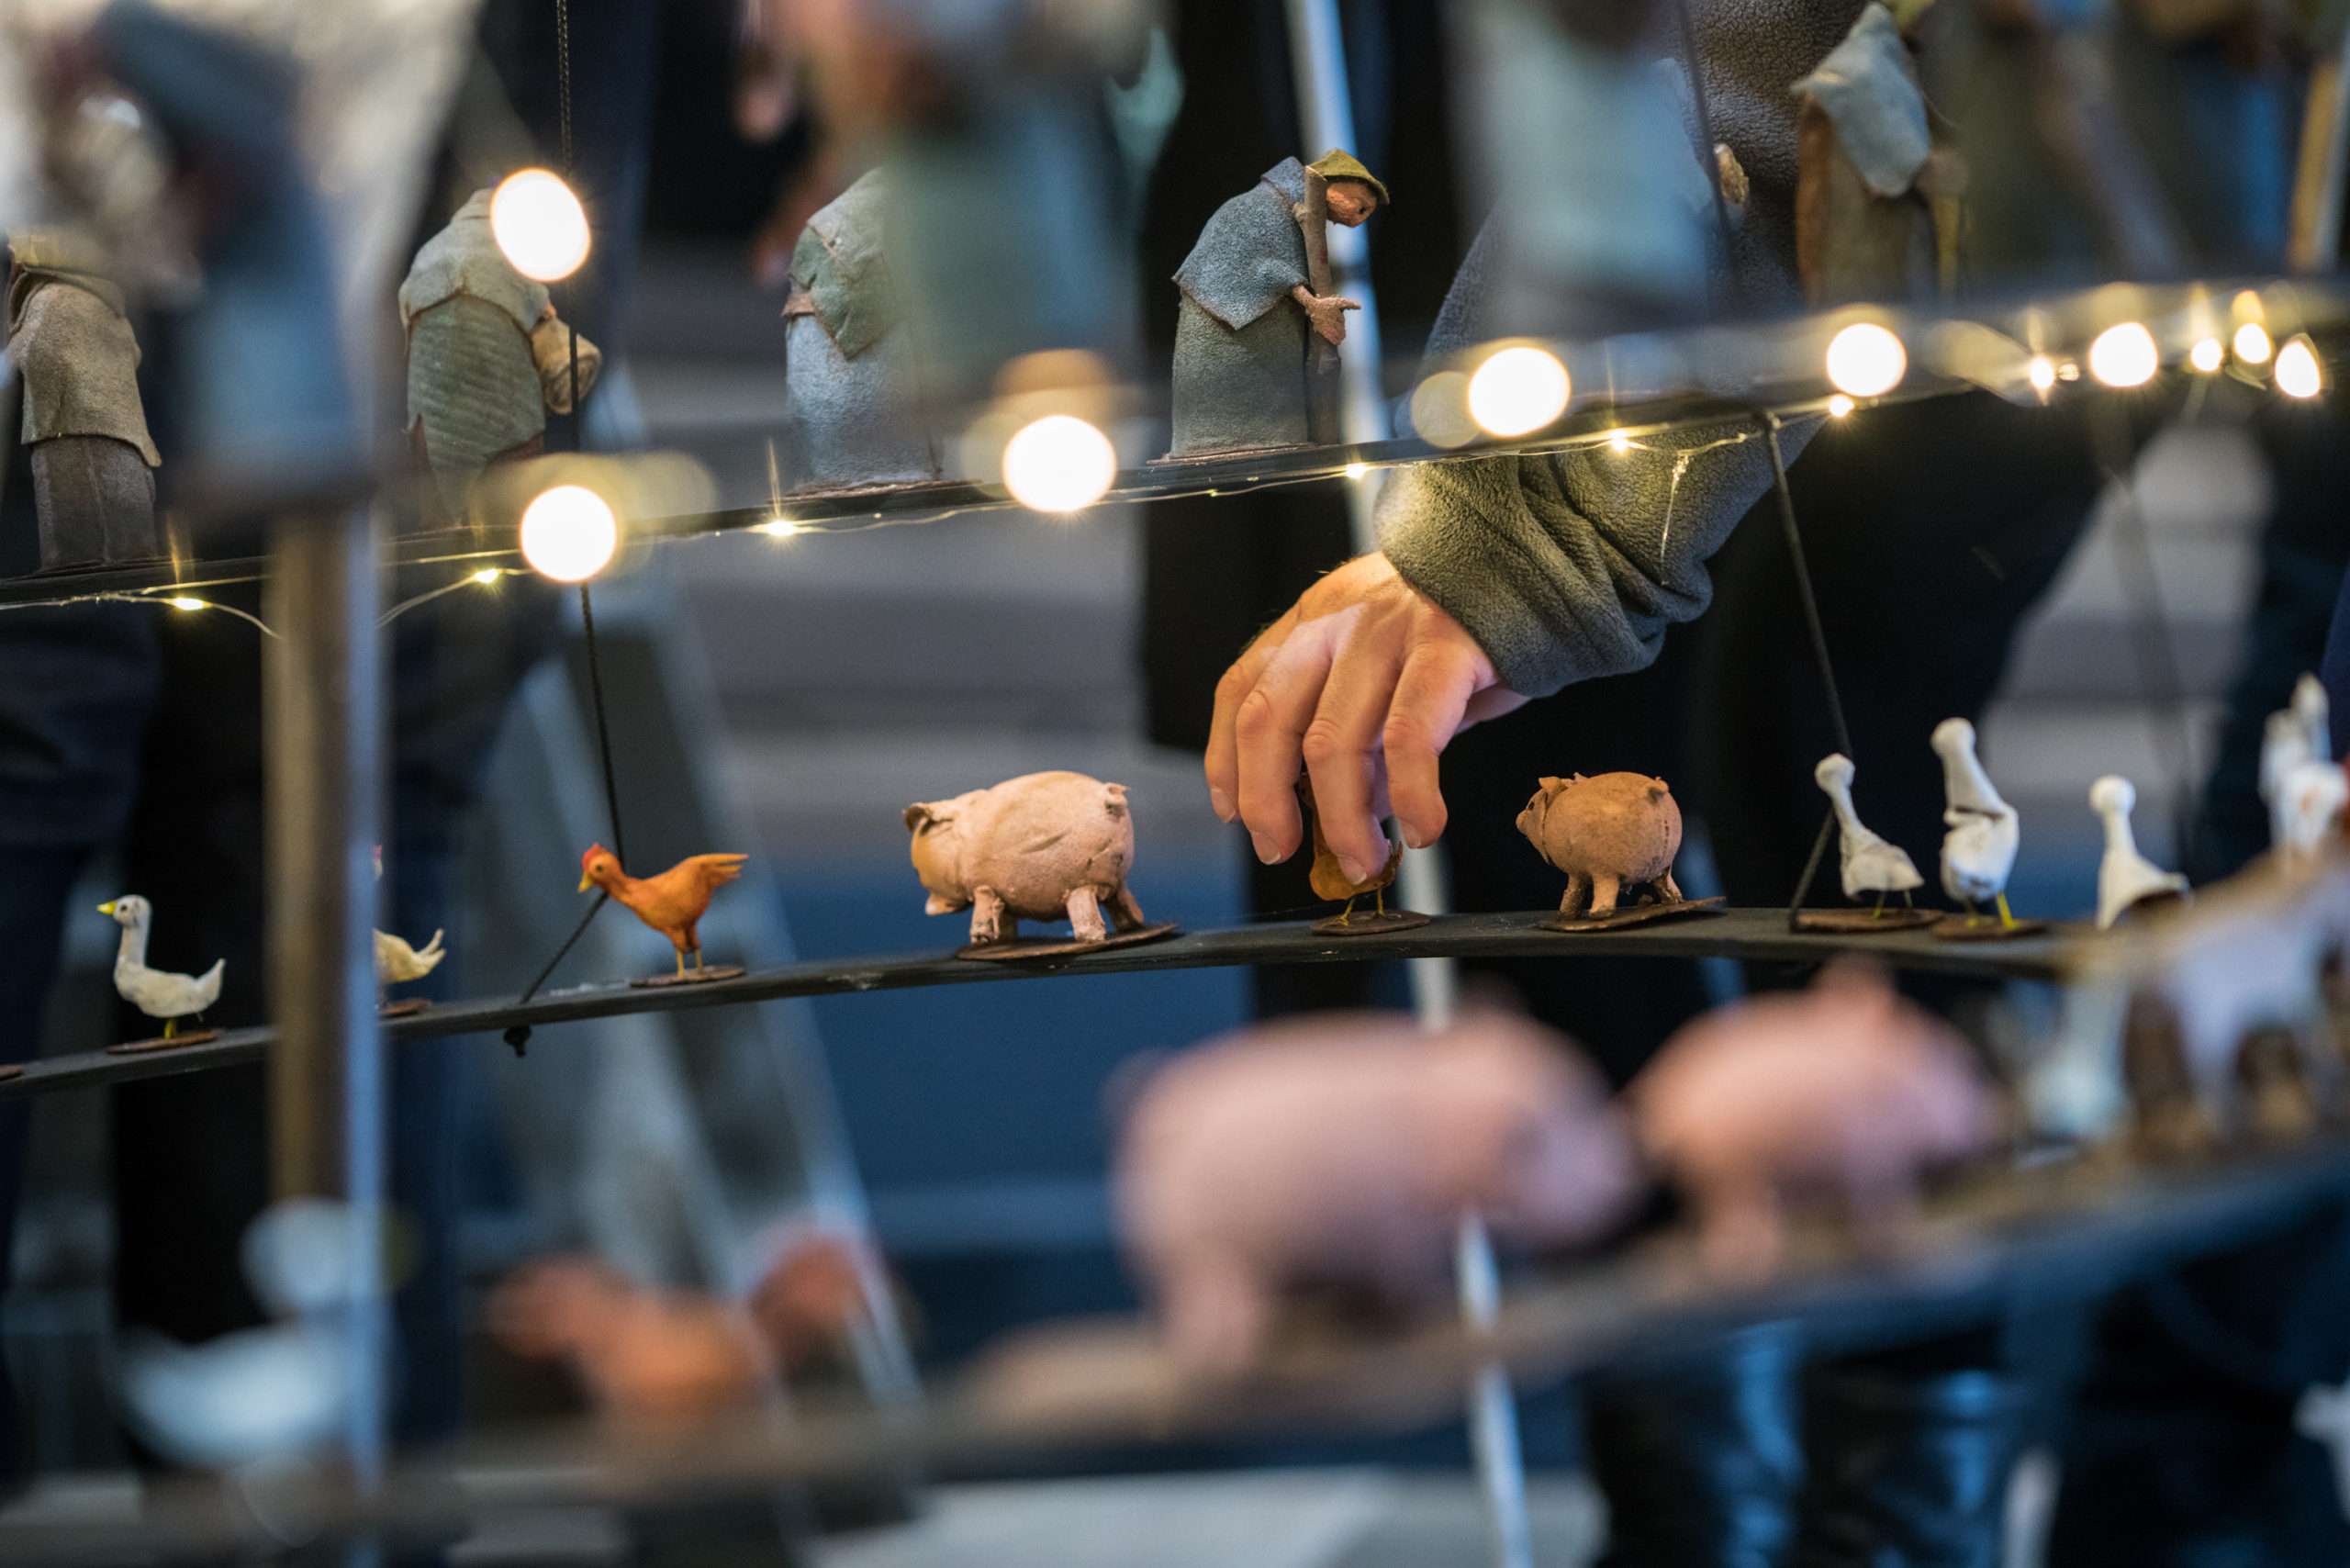 A close up shows two narrow ring-shaped shelves of miniature figures with a hand reaching down to touch one of them. One shelf holds animals: chickens, geese and pigs. The shelf above holds medieval peasants in dull blue and grey clothes, hunched over, some leaning on sticks. Fairy lights run round the shelves.